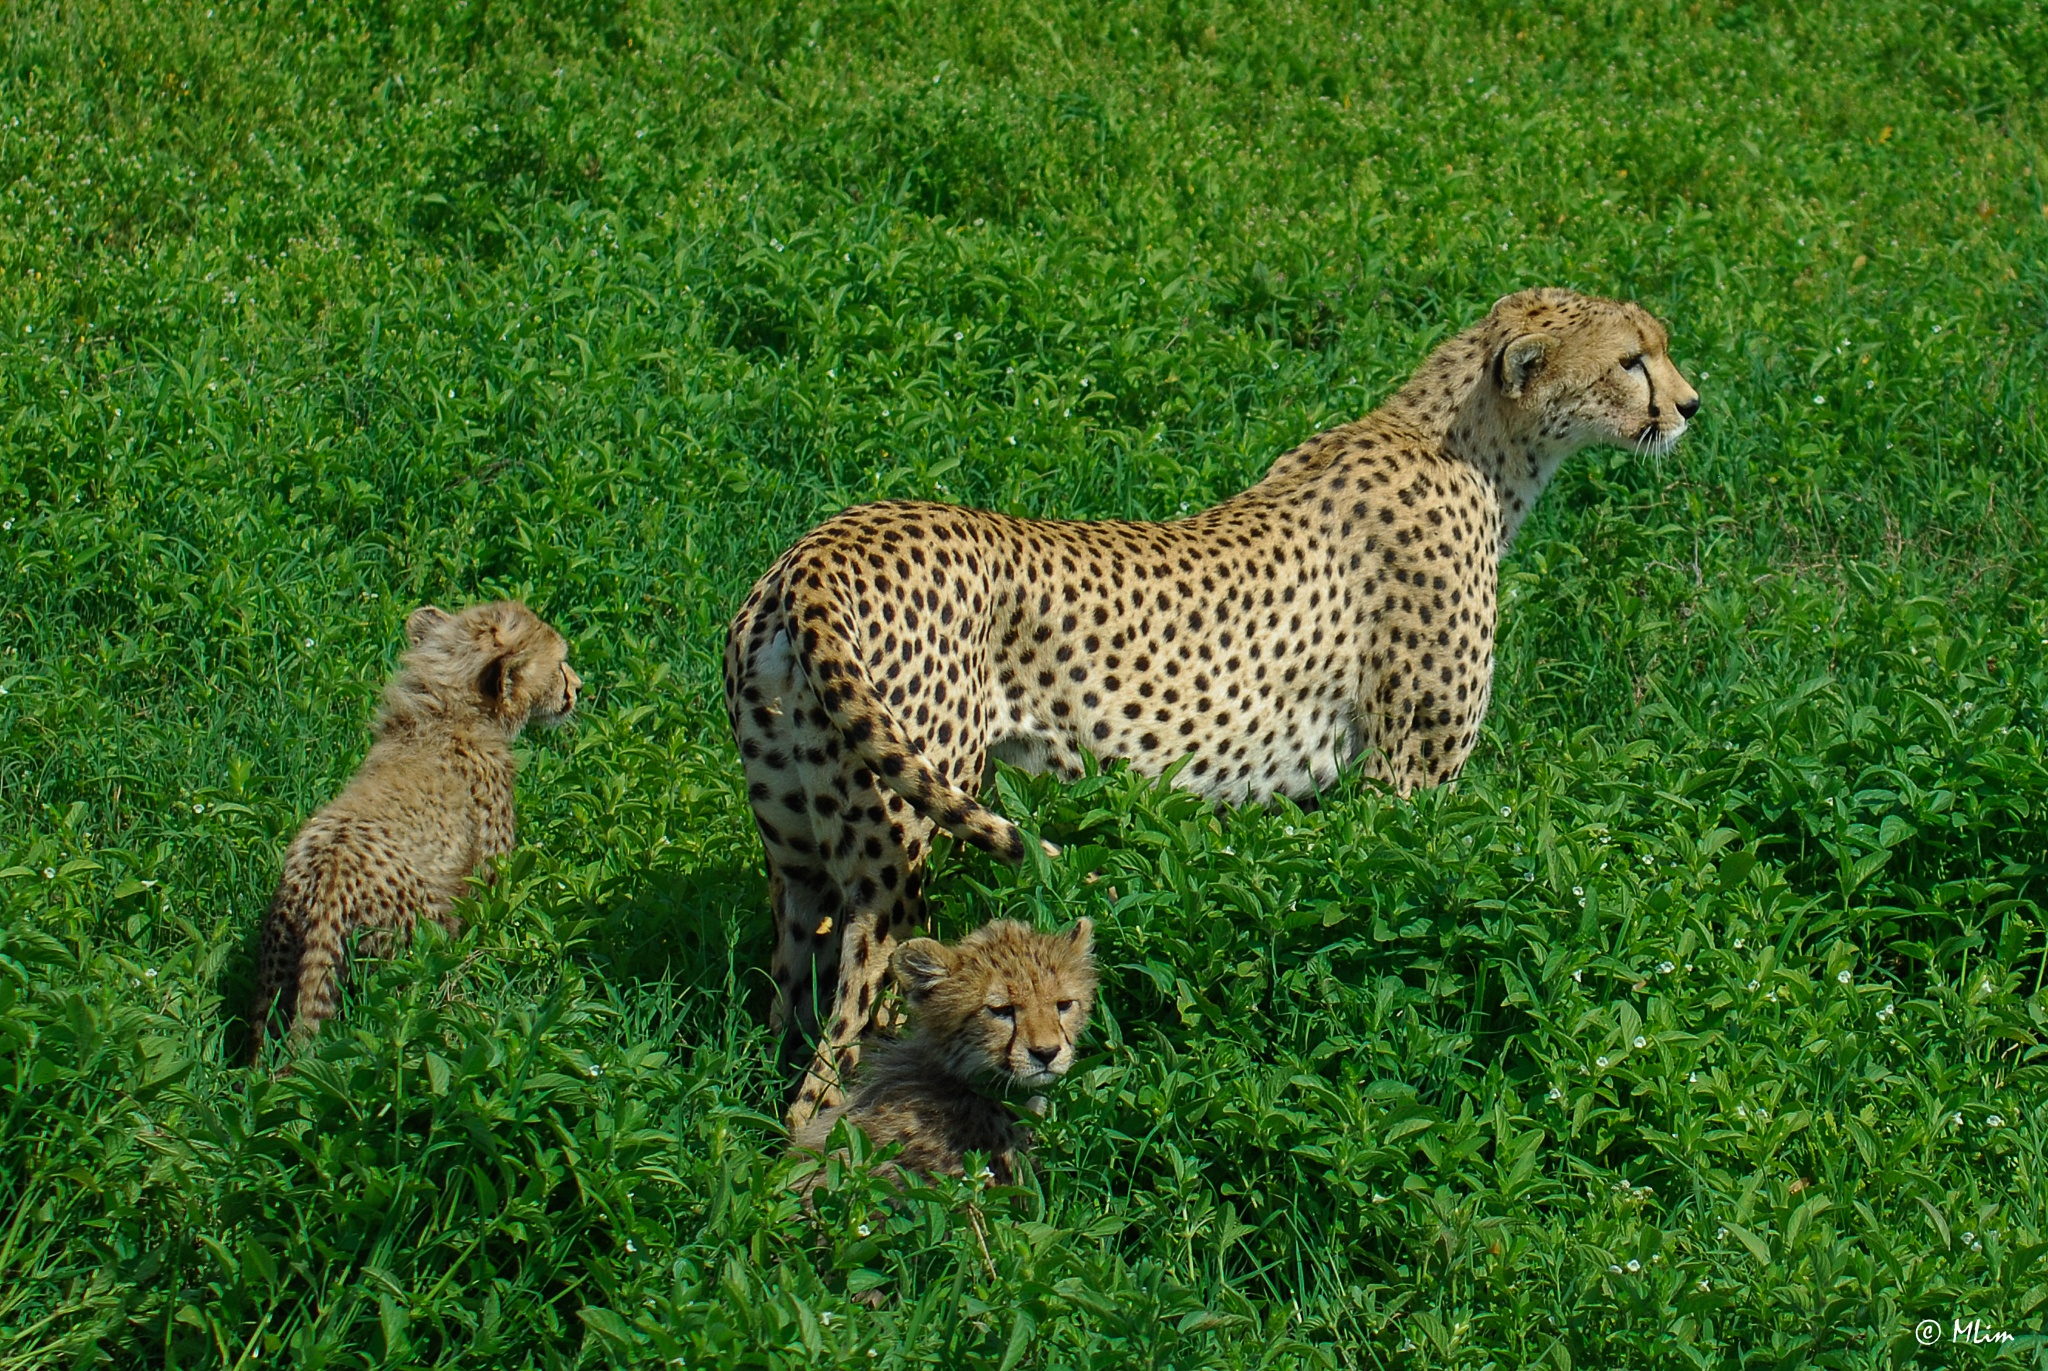 Cheetah with 2 cubs by Meng Lim